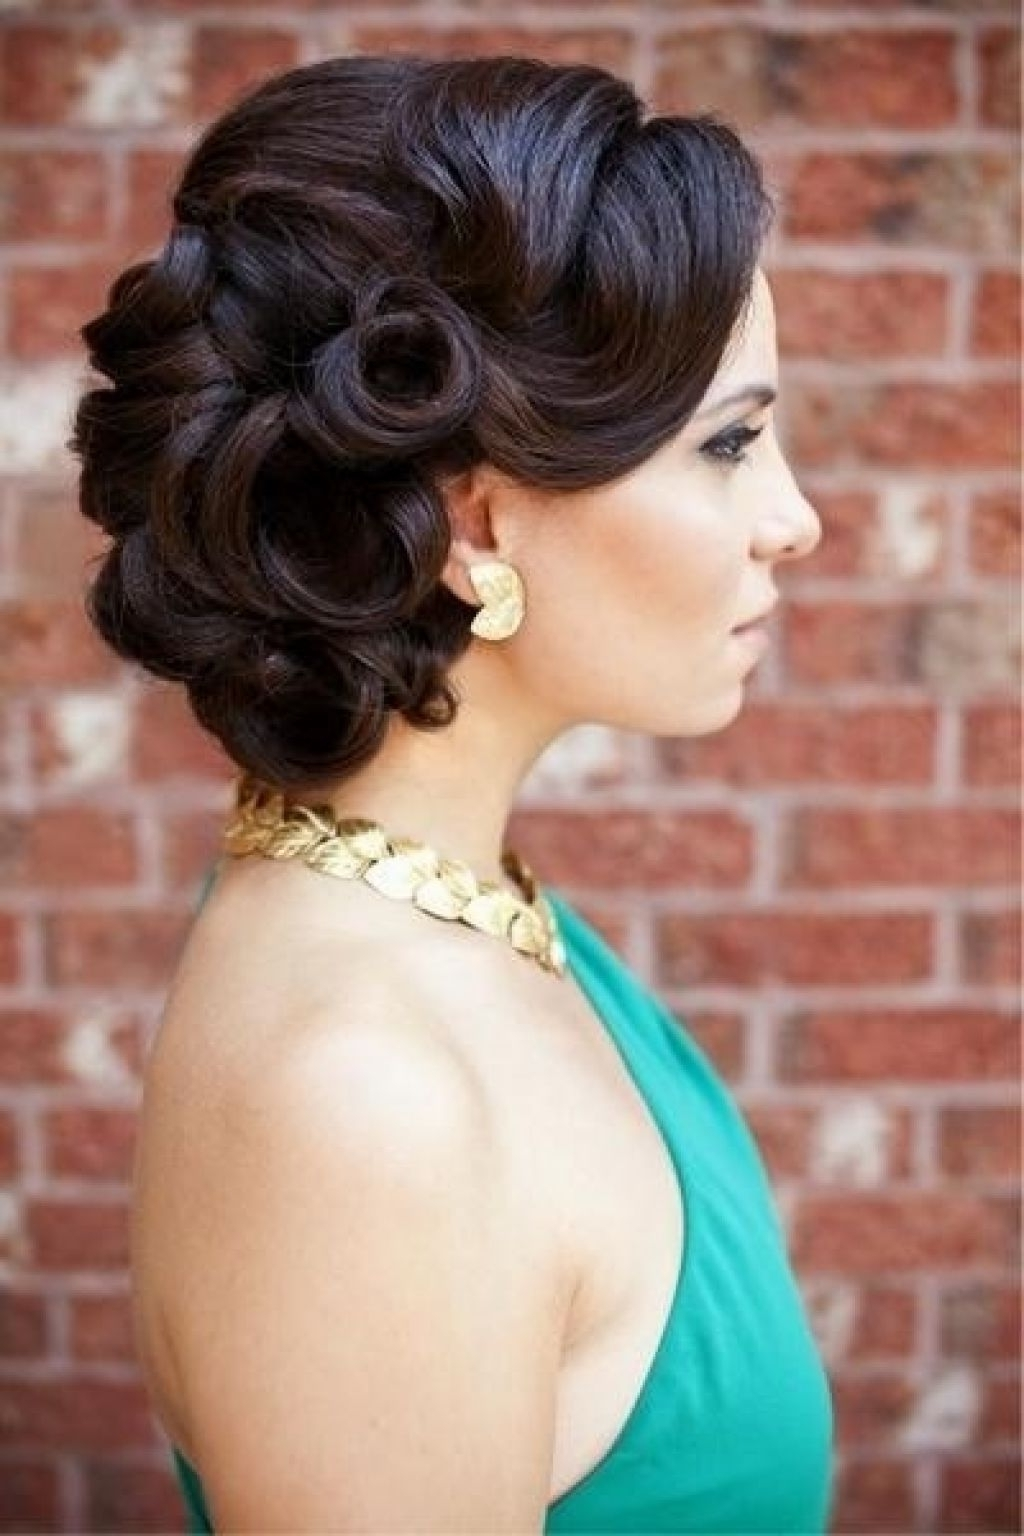 Vintage Updo Hairstyles For Long Hair – Women Medium Haircut Inside Vintage Updo Hairstyles (View 5 of 15)